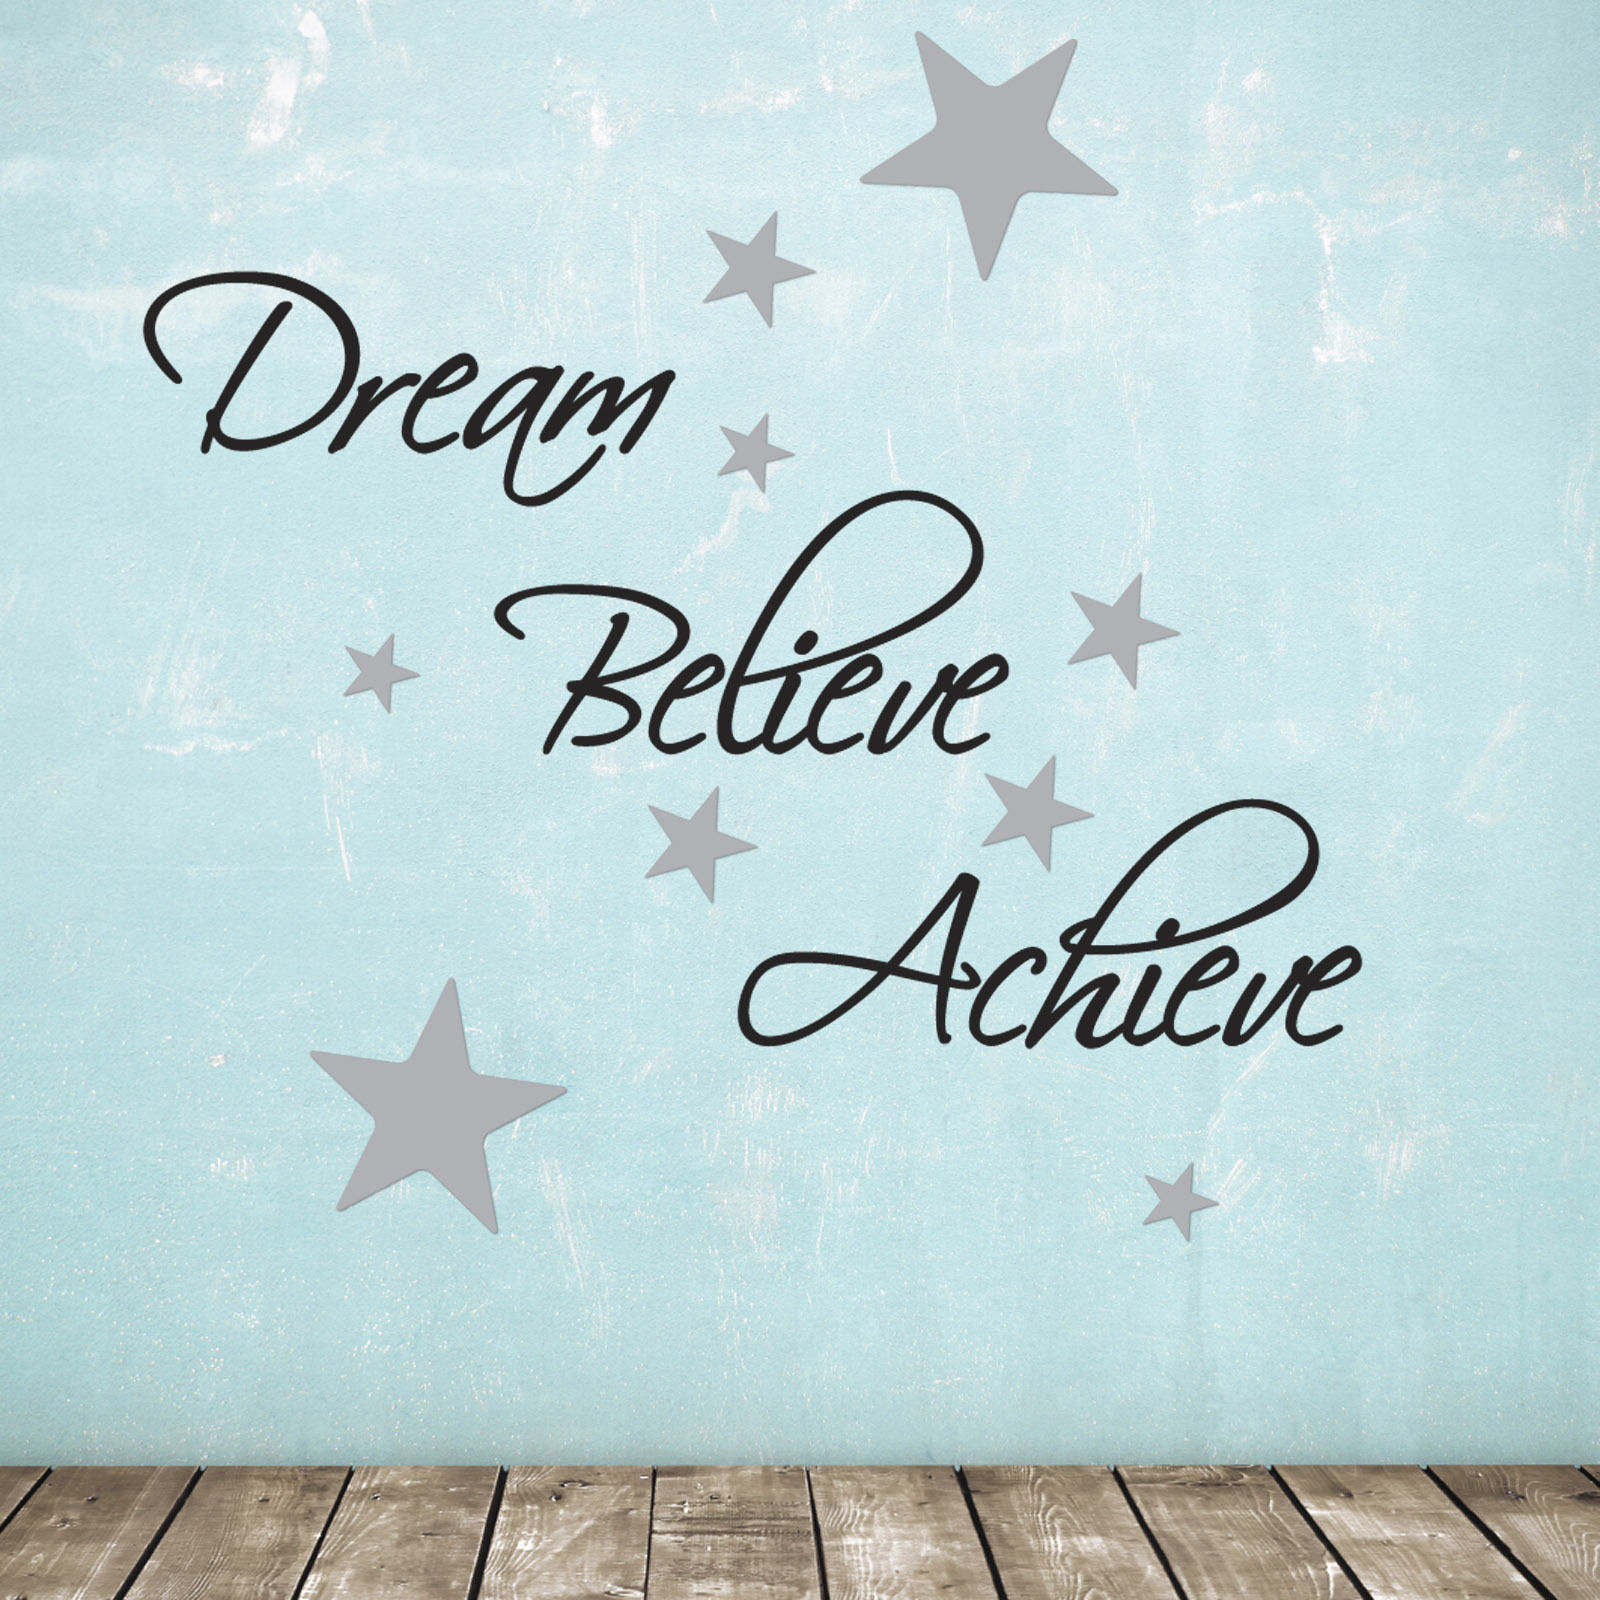 Writing Wall Art Stickers Dream Believe Achieve Wall Sticker Pack Includes 60